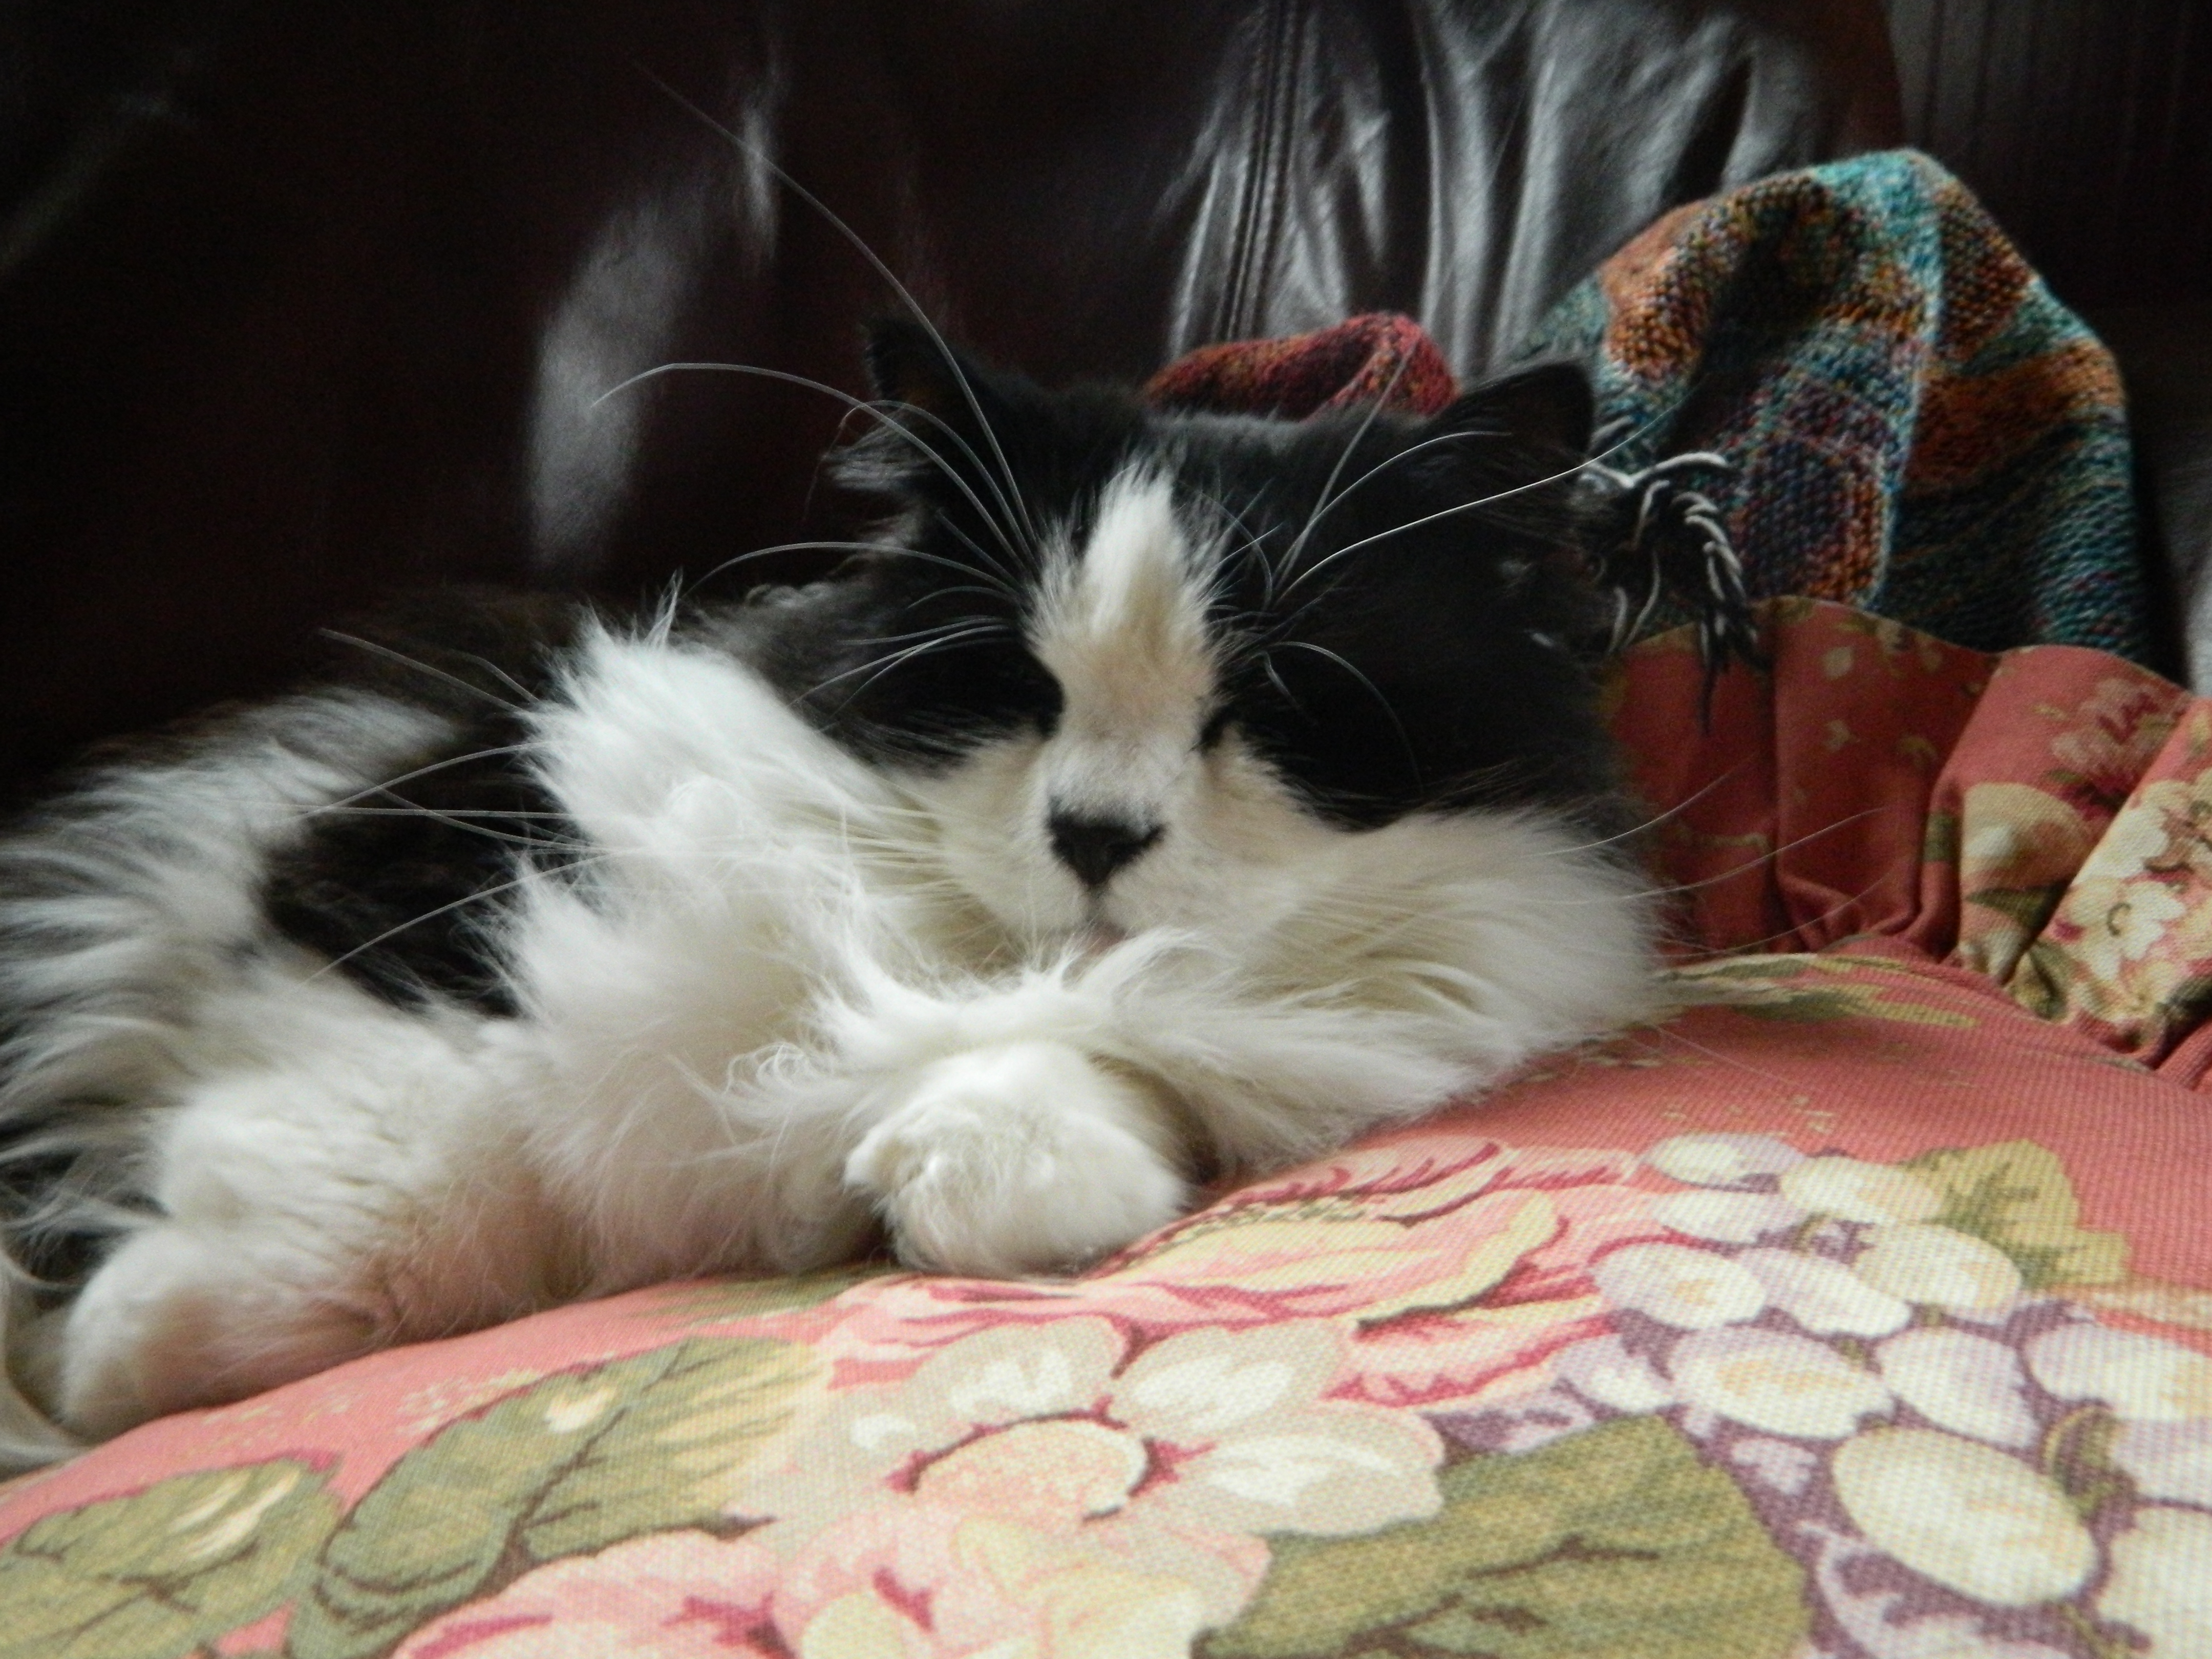 diazepam valium side effects in cats